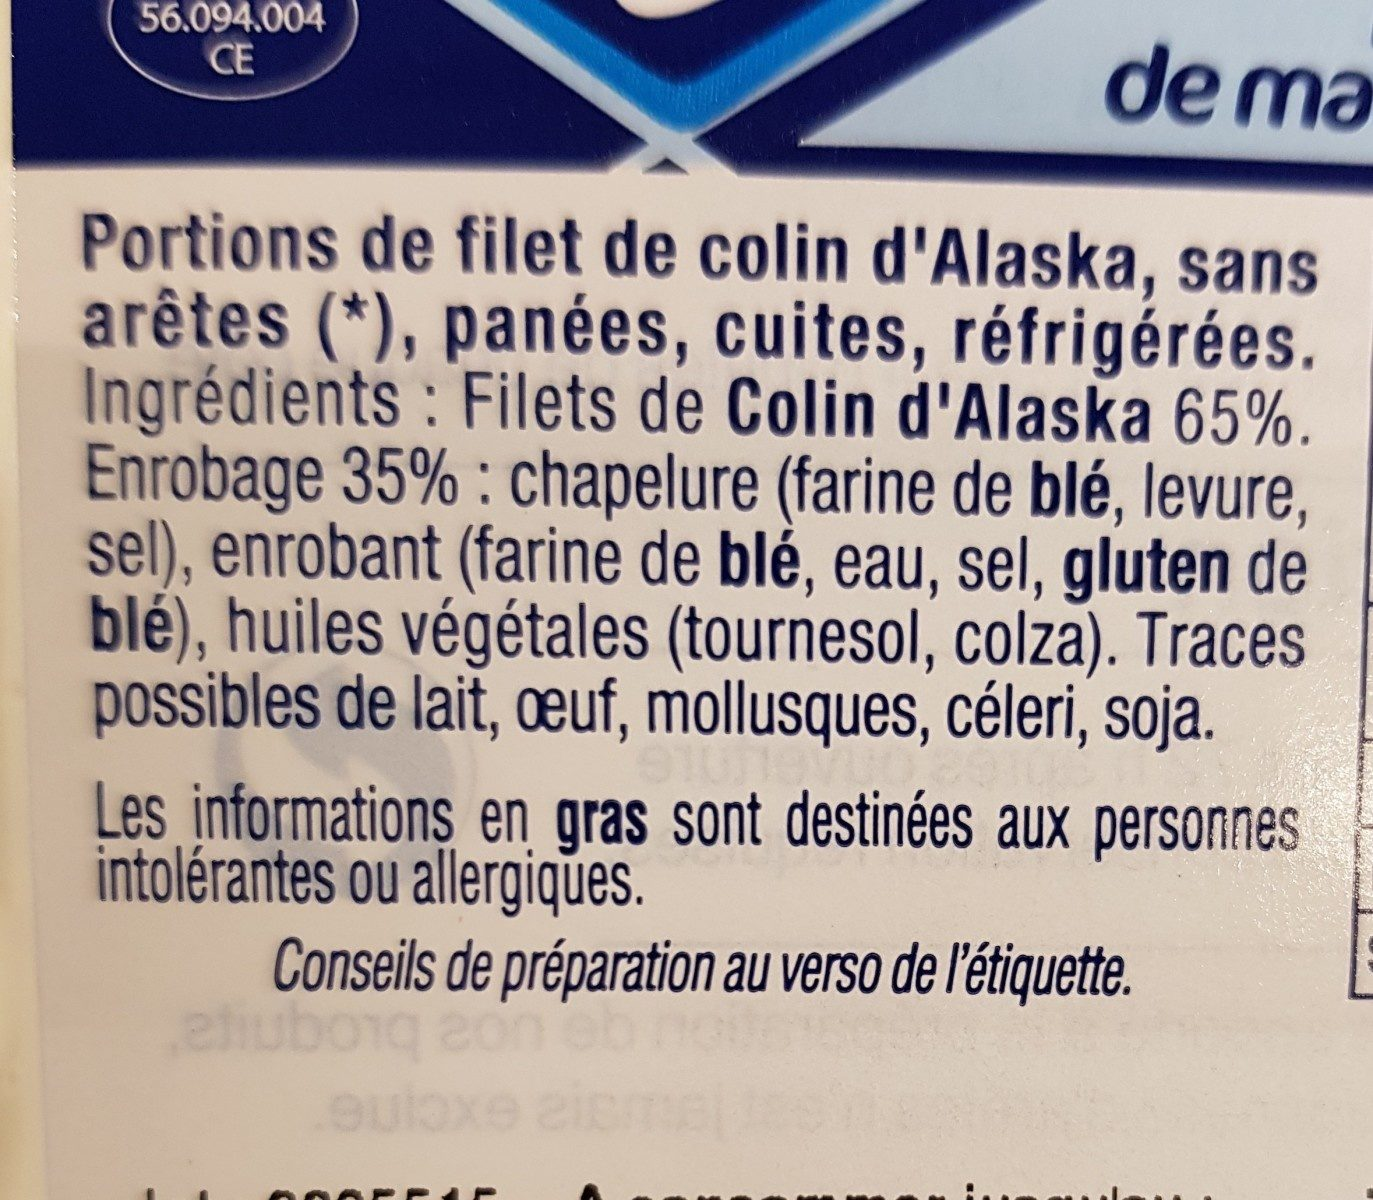 Filet de Colin d'alaska Pané - Ingredients